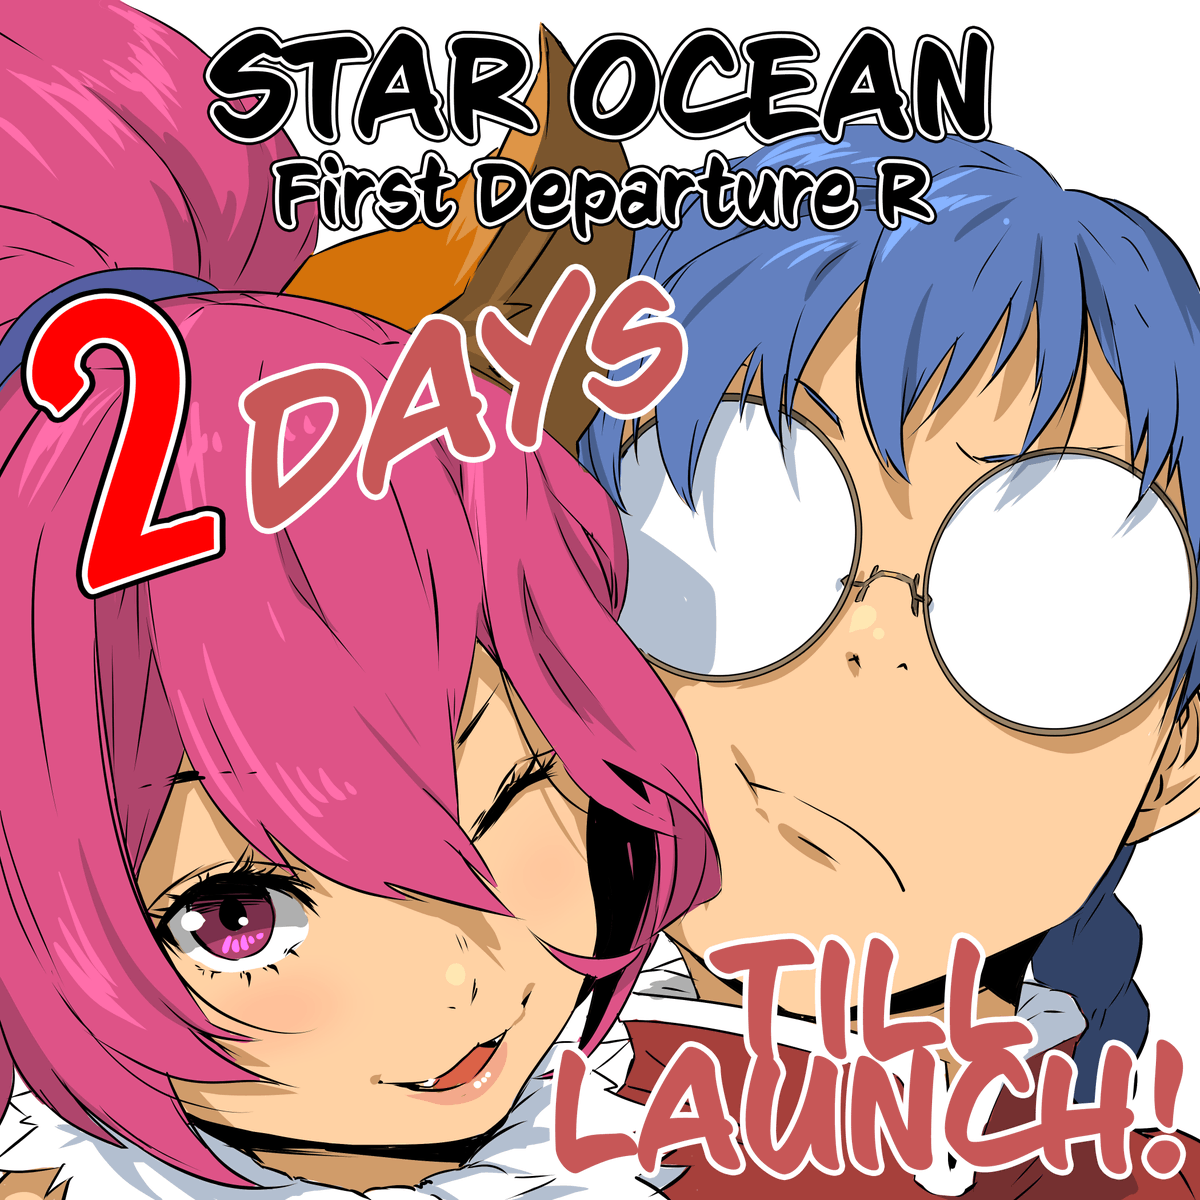 #StarOcean First Departure R is here in just two days! STAR OCEAN First Departure R will be digitally available on #PS4 and #NintendoSwitch! Learn more: sqex.link/0iv #StarOcean